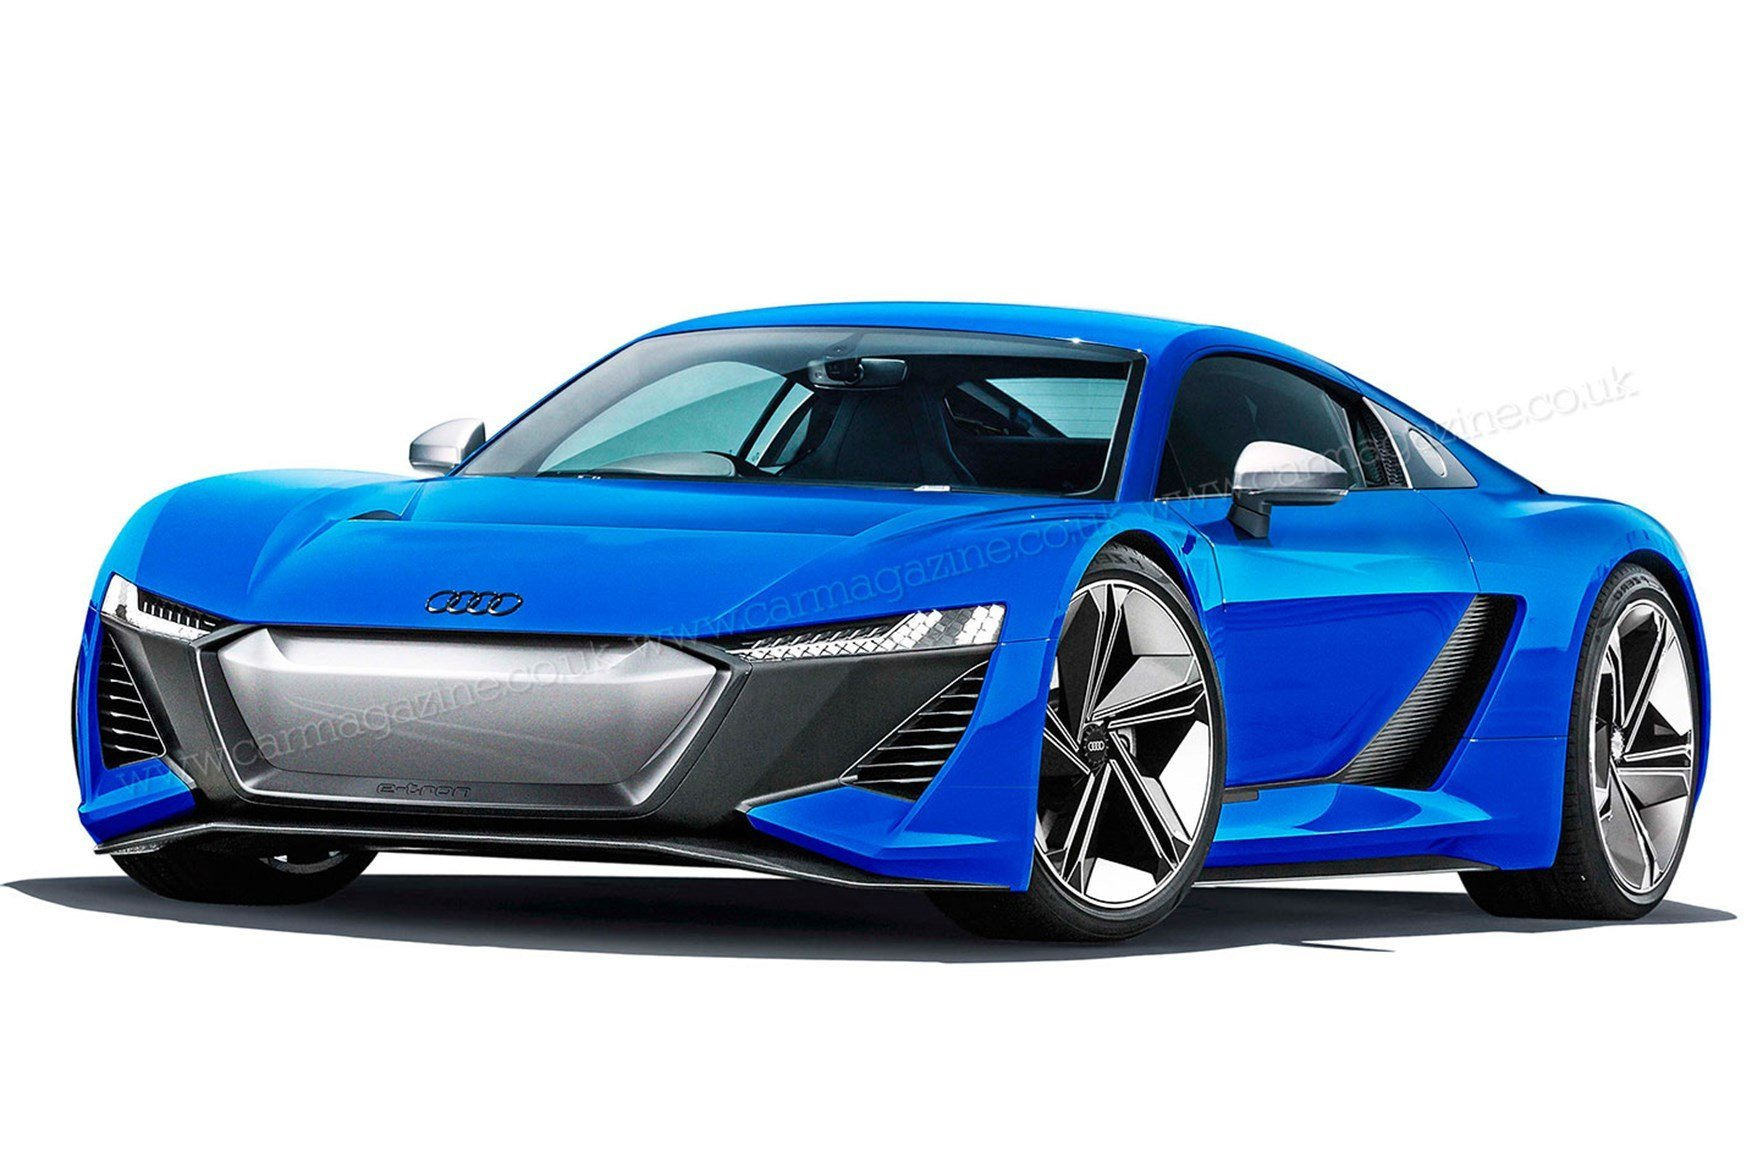 Latest Audi E Tron Gtr 2022 Electric Replacement For Audi R8 Free Download